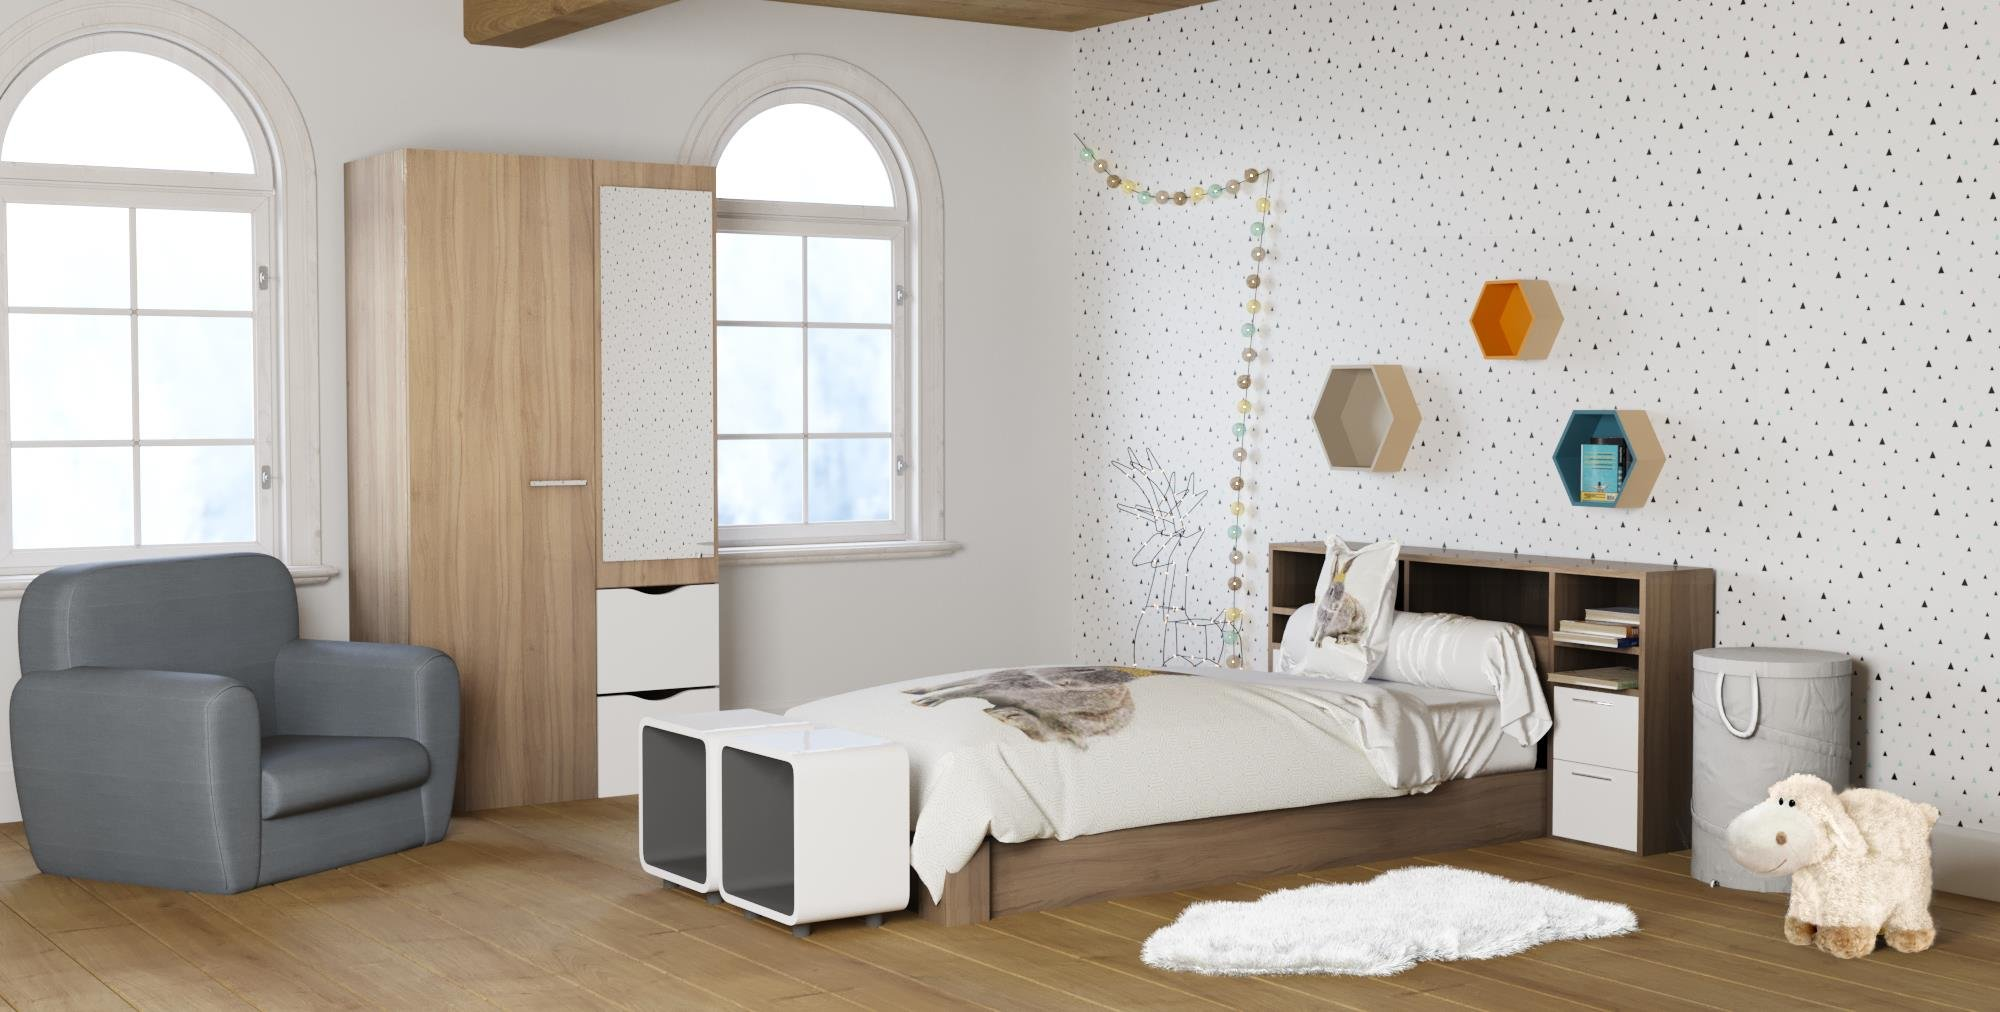 chambre d 39 enfant scandinave blanche beige inspiration style scandinave. Black Bedroom Furniture Sets. Home Design Ideas